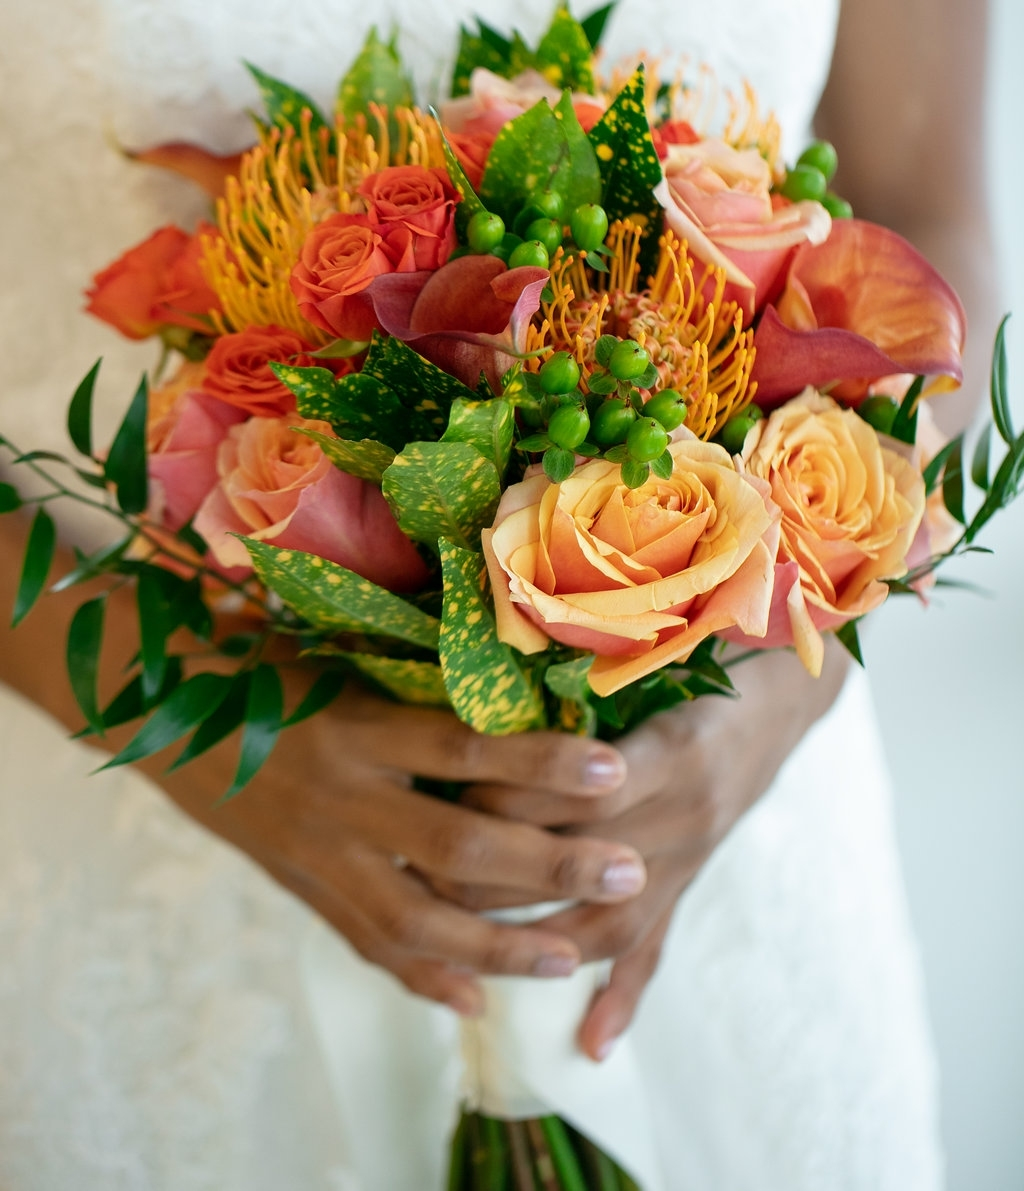 30+ Summer Wedding Flowers In Season June, July And August regarding Garden Flowers For June Wedding